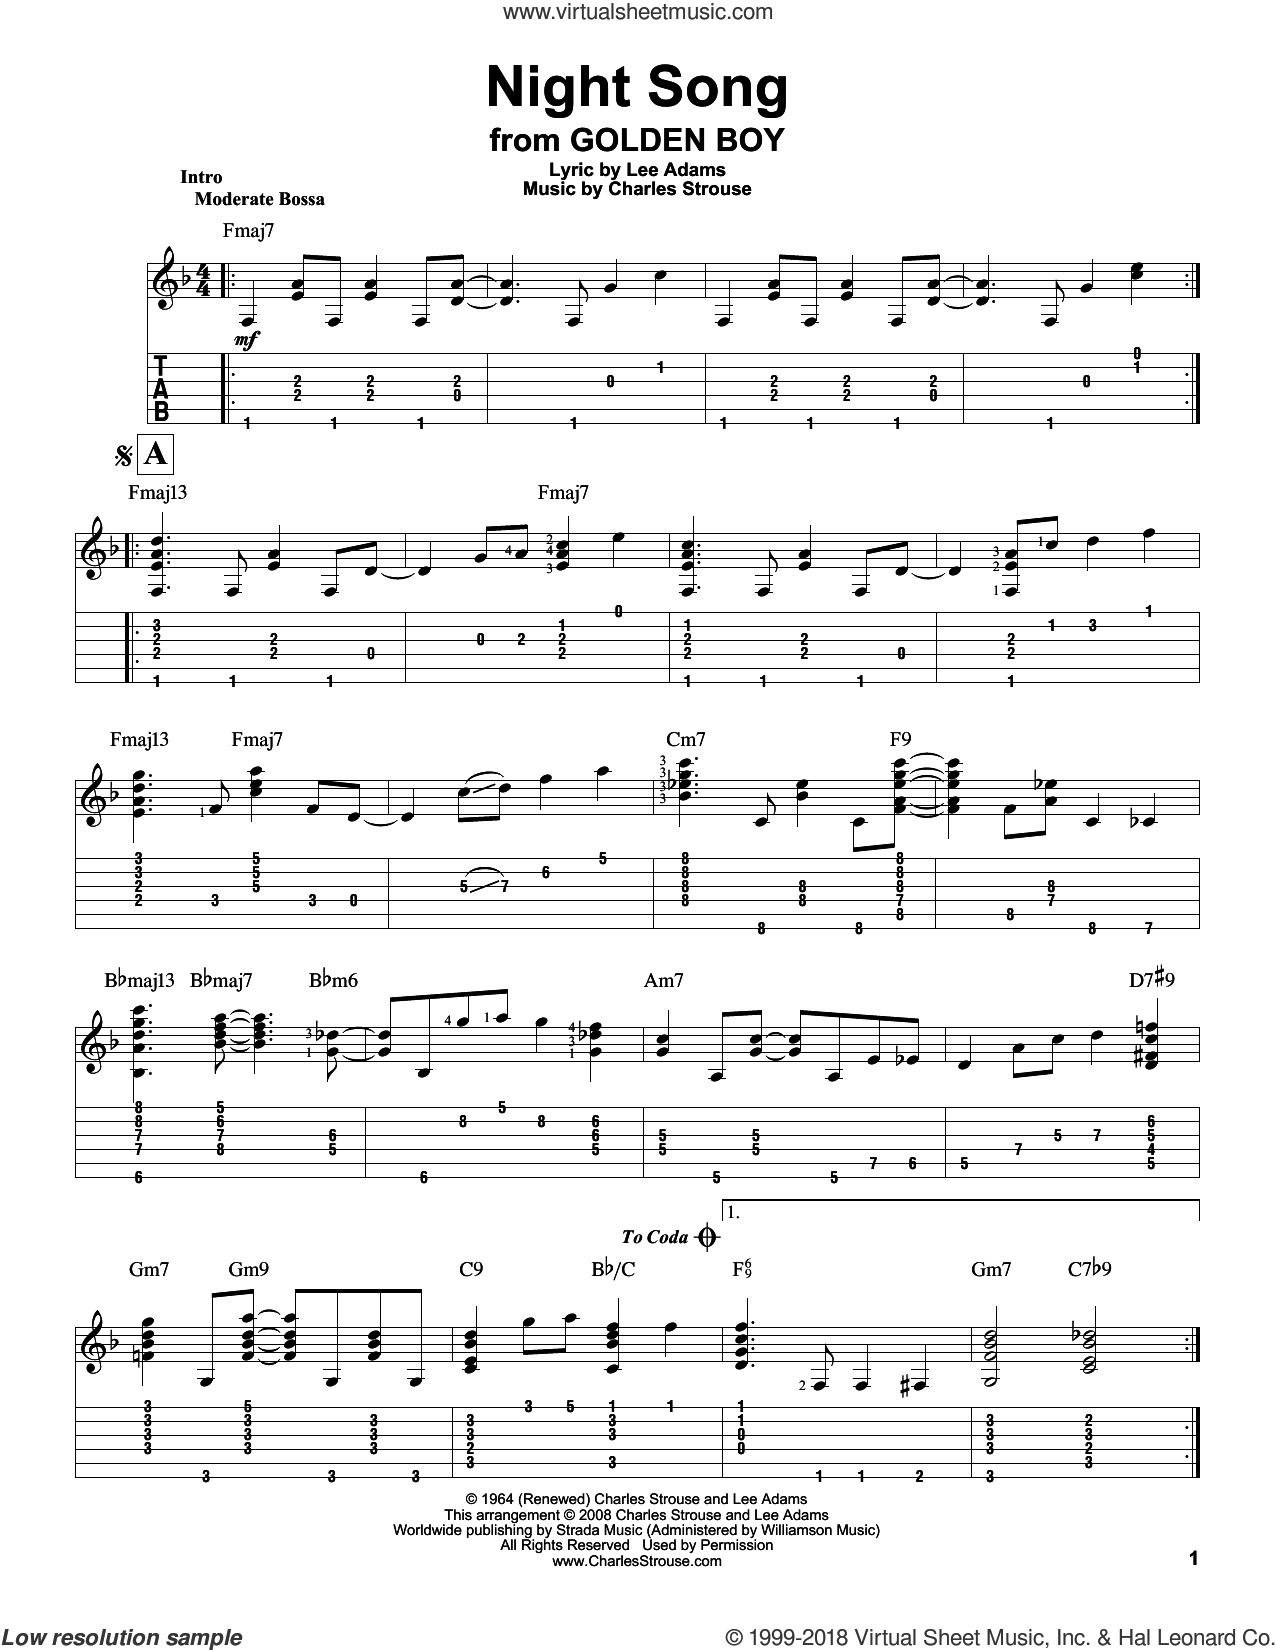 Night Song sheet music for guitar solo by Lee Adams